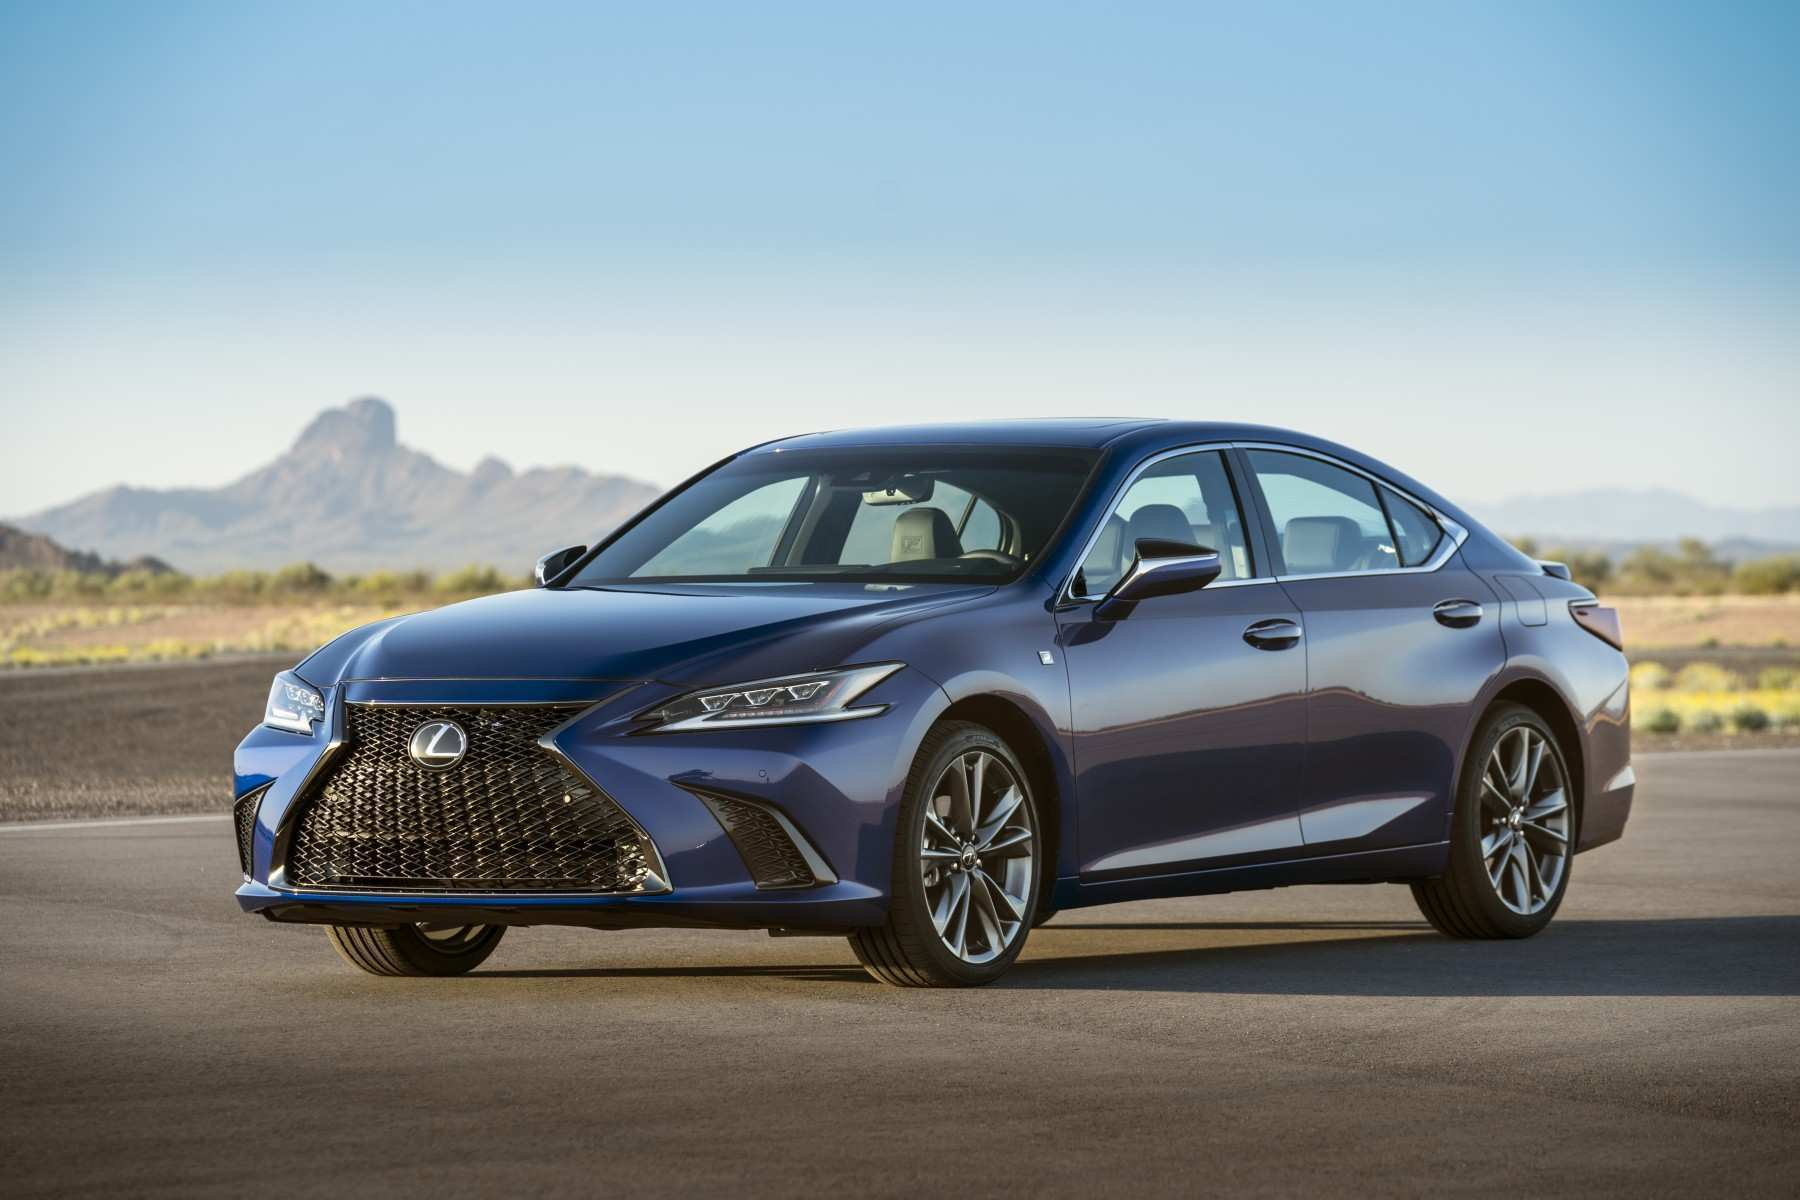 73 New Lexus Es 2020 Test Drive Exterior and Interior for Lexus Es 2020 Test Drive